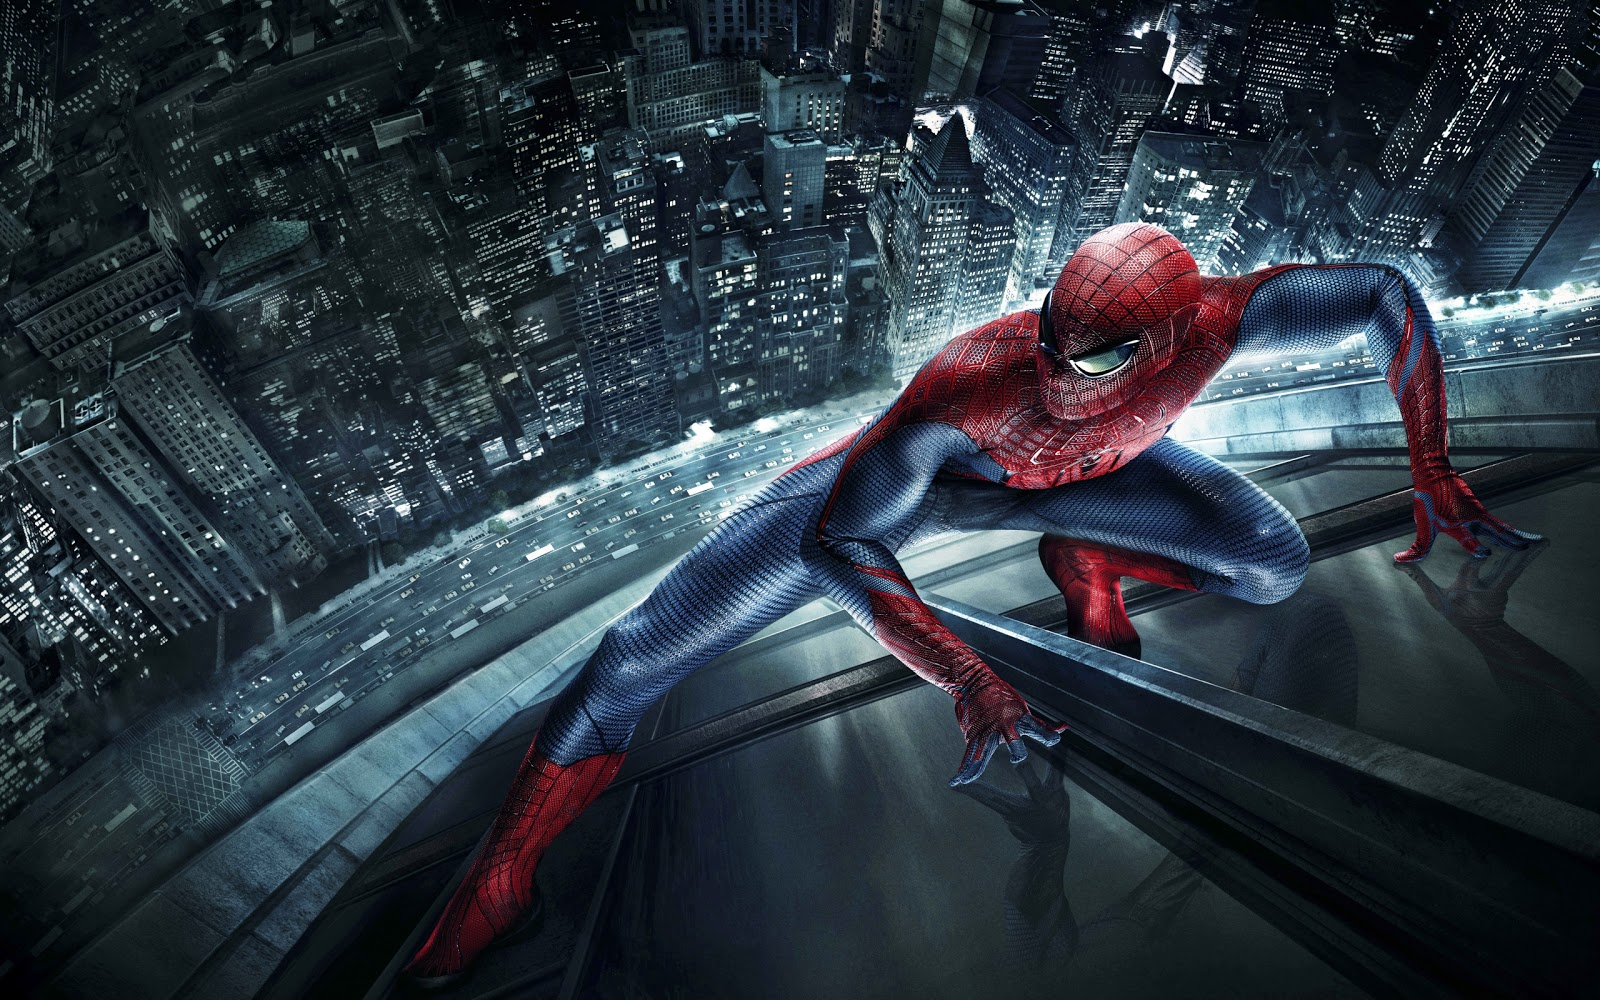 Amazing Spiderman desktop wallpapers in high quality  - peter parker amazing spider man wallpapers